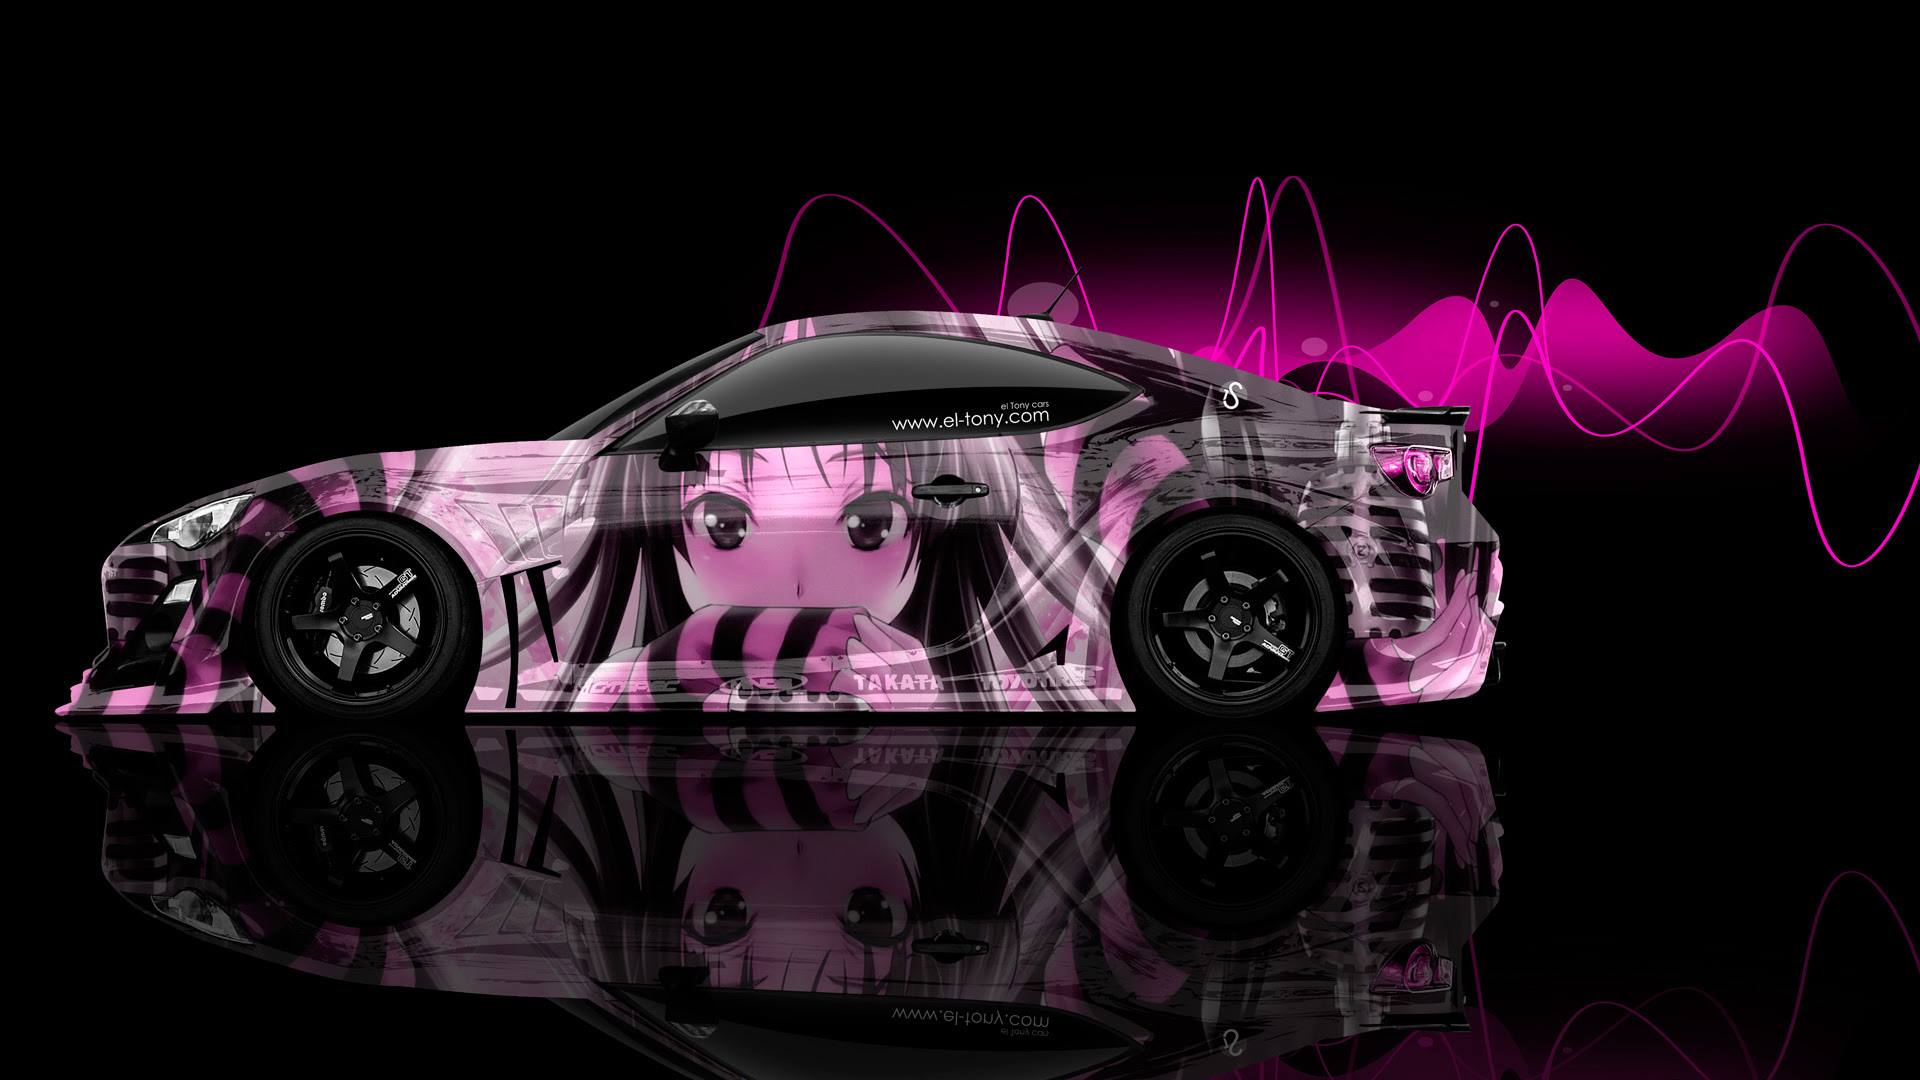 Toyota GT86 JDM Side Anime Aerography Car 2014 | el Tony